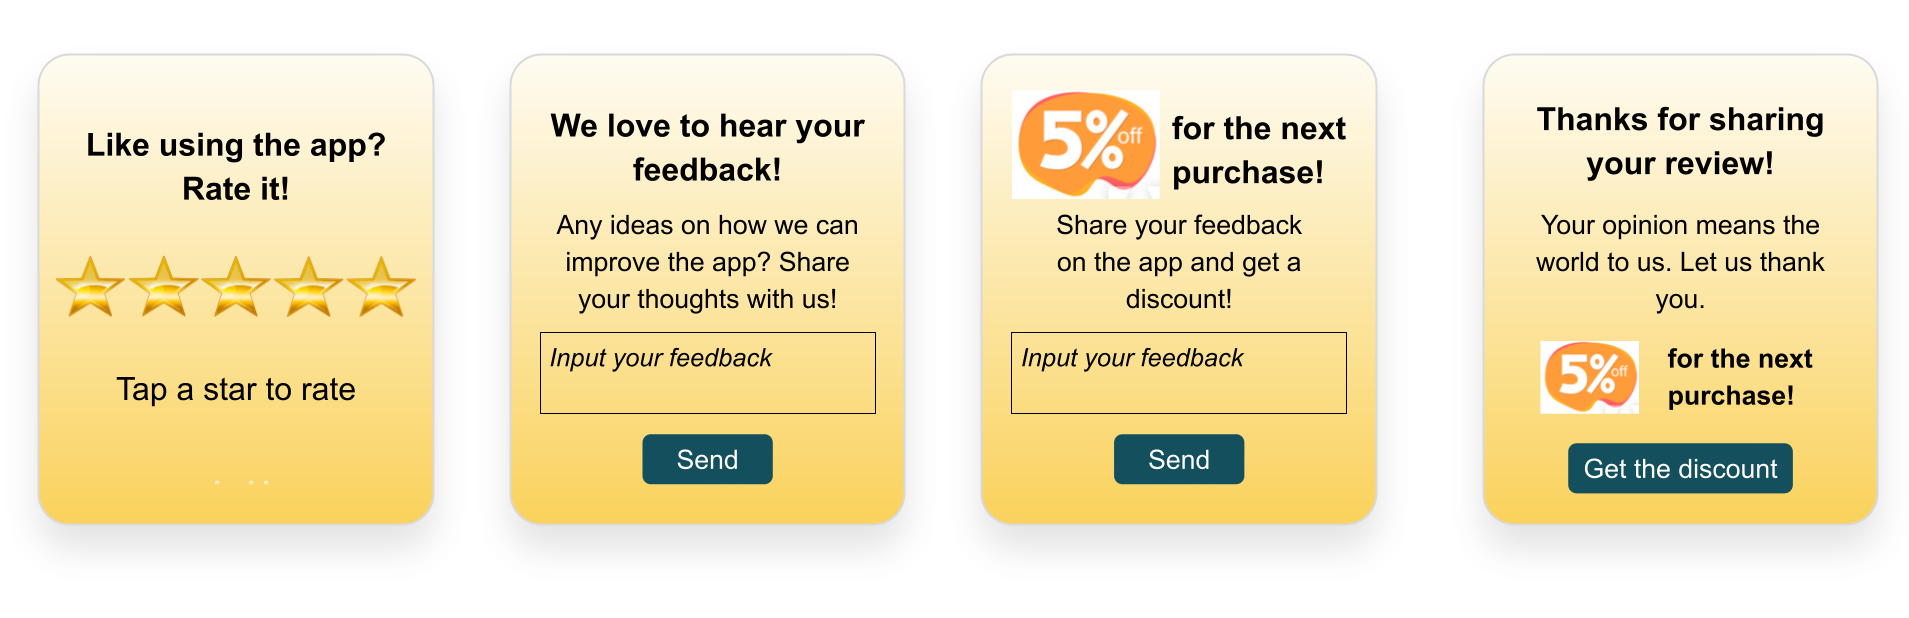 Increase app user engagement with NPS surveys and feedback collection